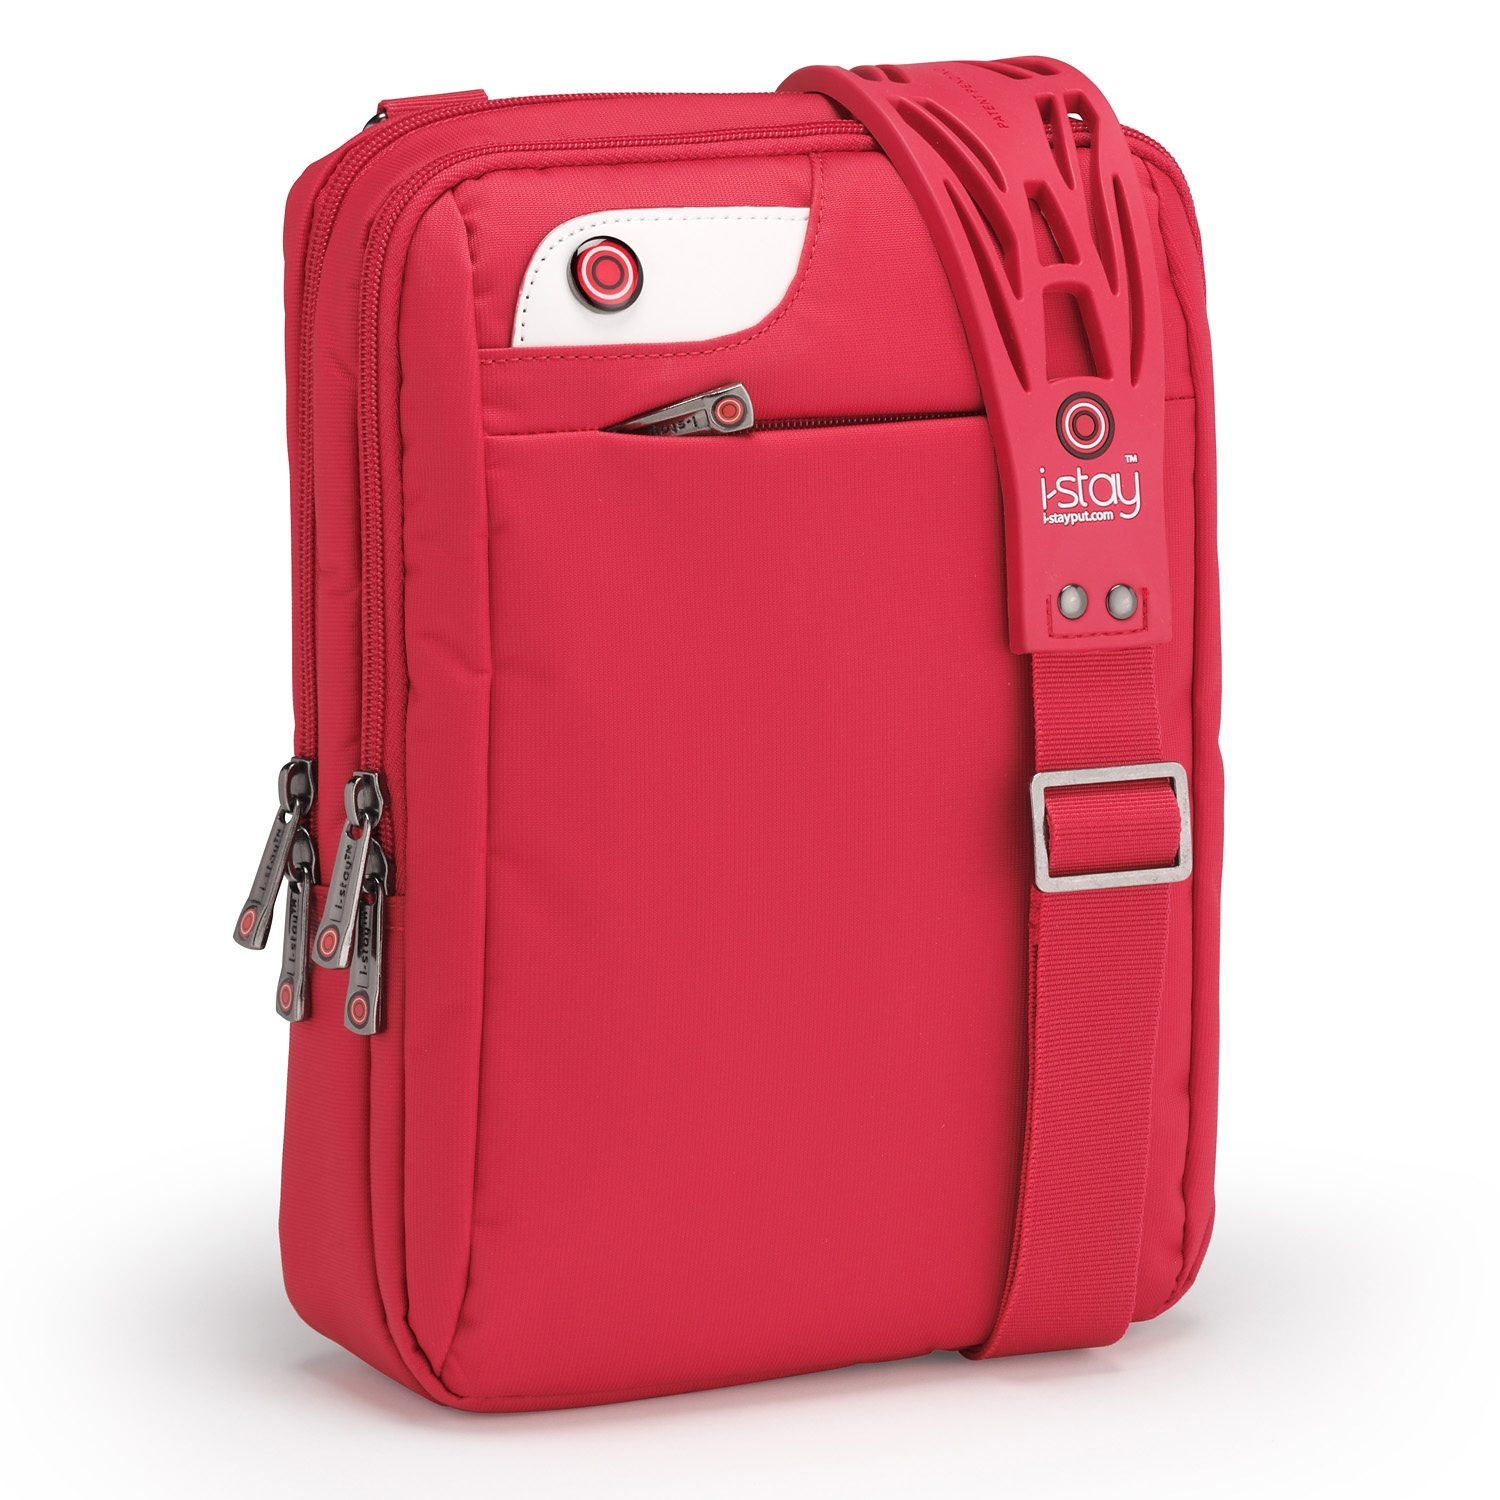 I-STAY Design »iPad/Tablet Tasche 25,6 cm 10,1 Zoll rot«